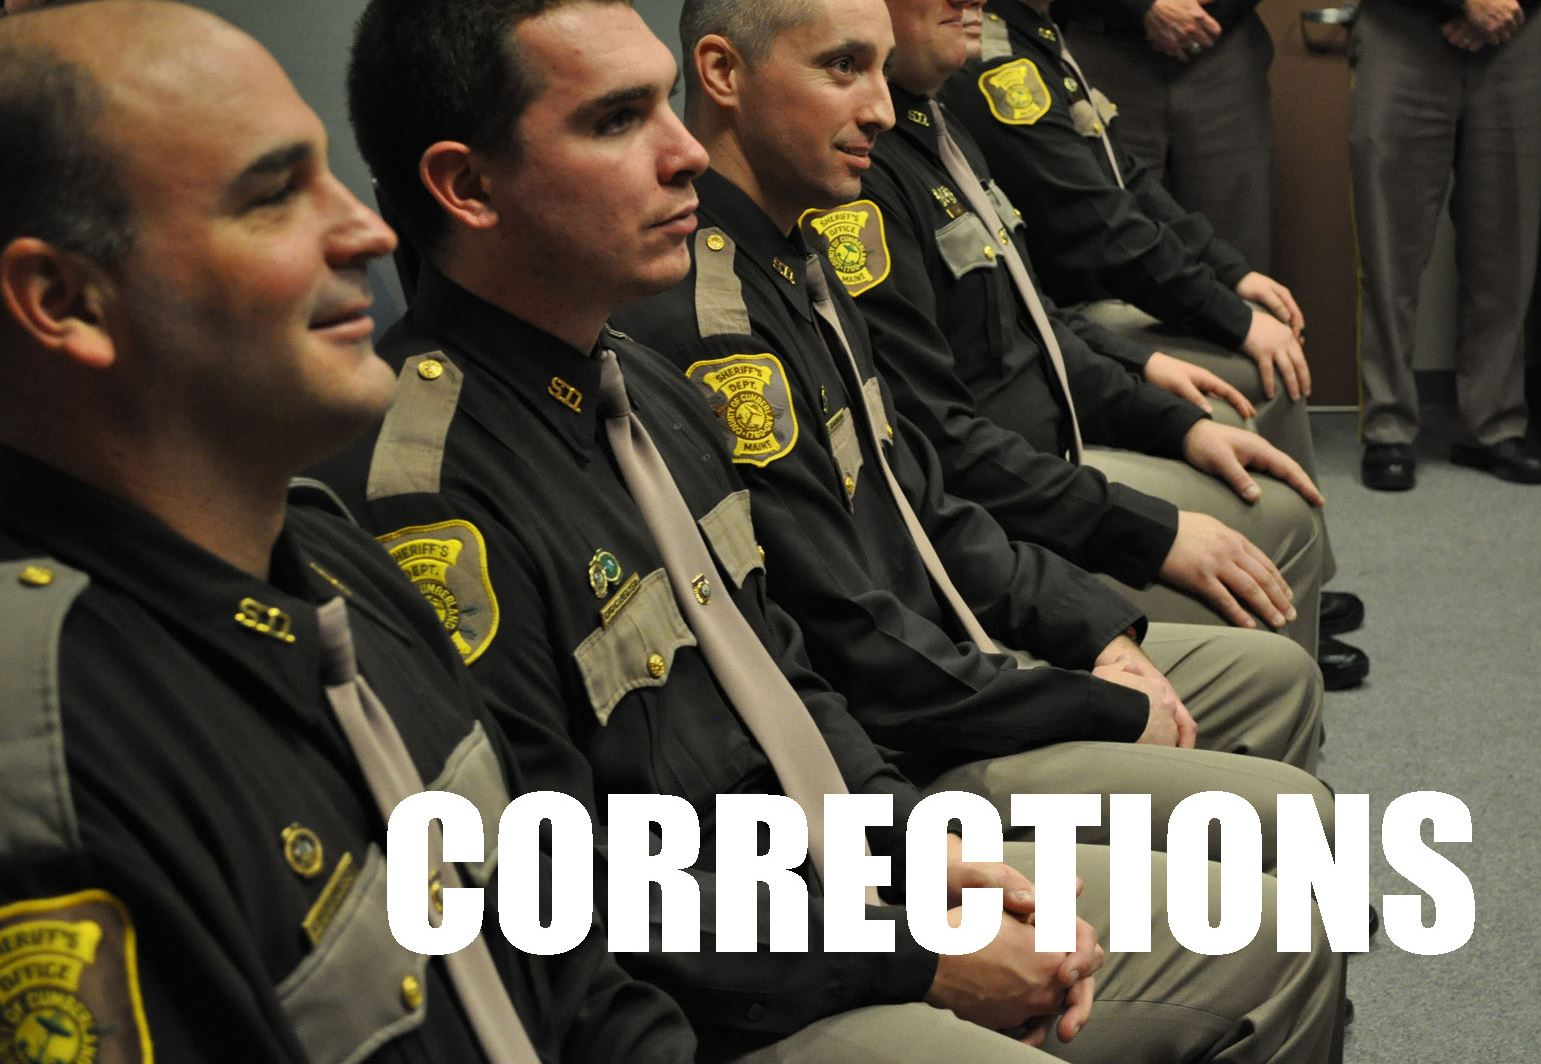 corrections job button